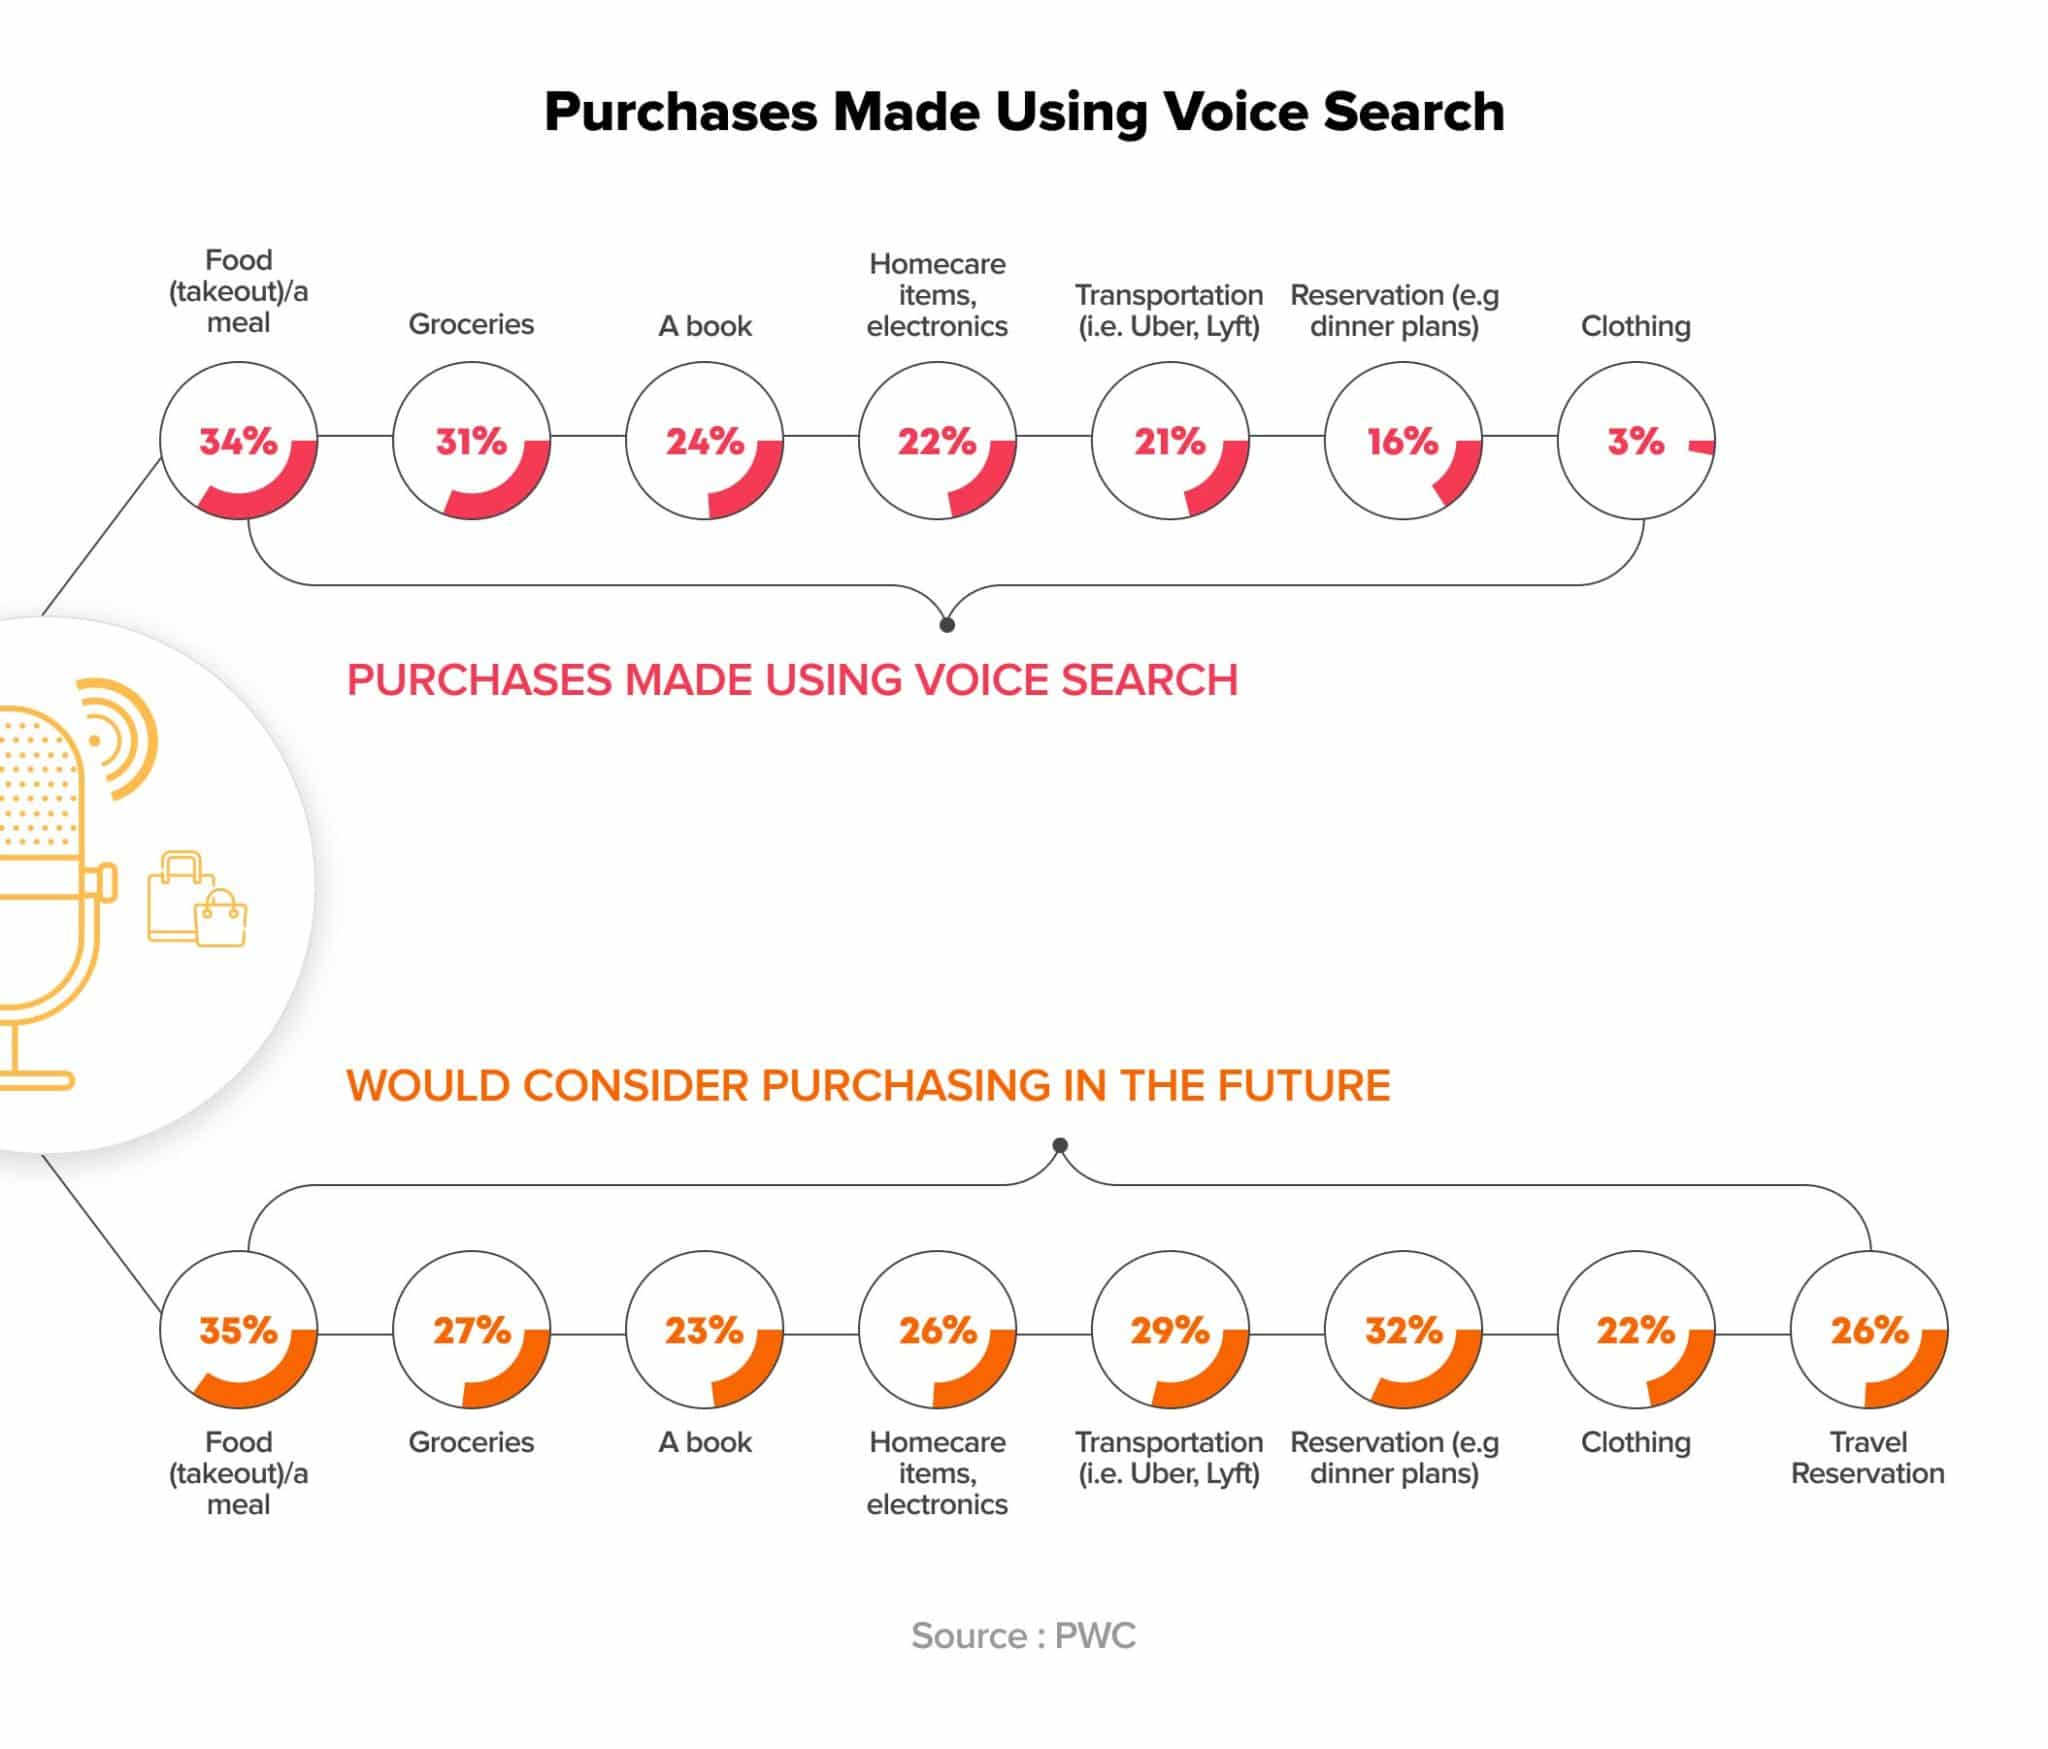 How many people purchase using voice search - a study by PWC